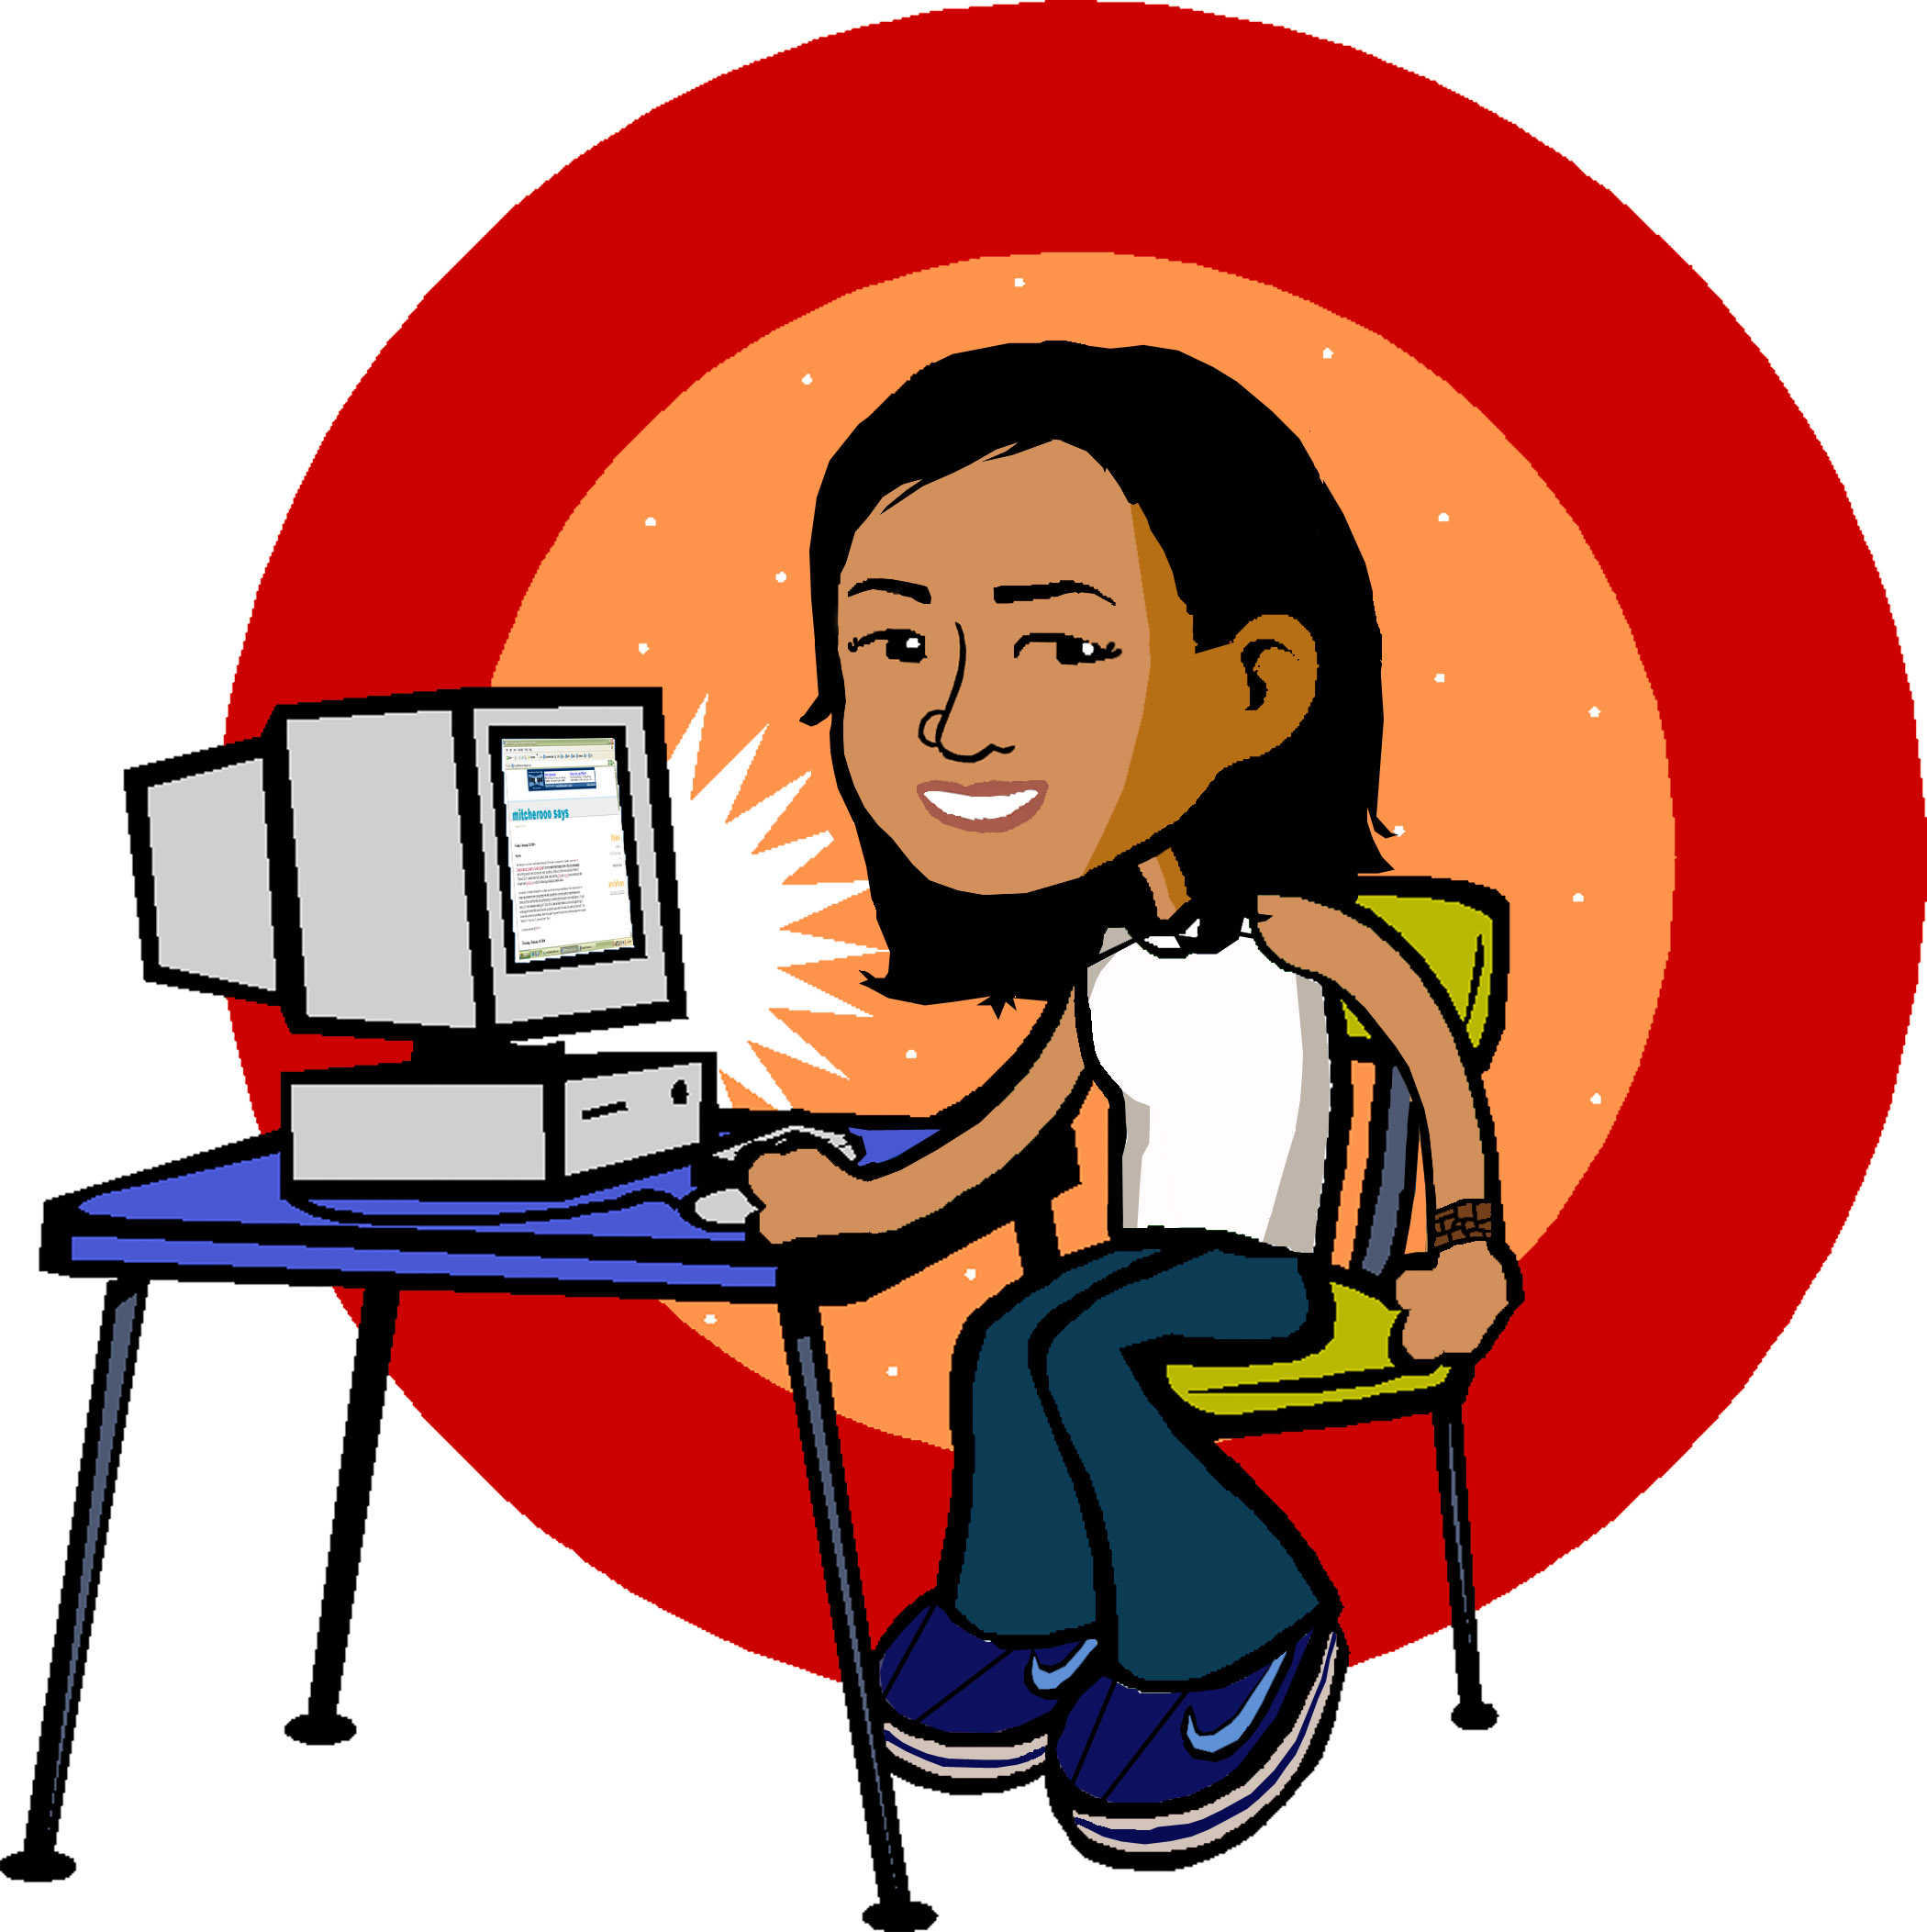 computer education clipart - photo #32